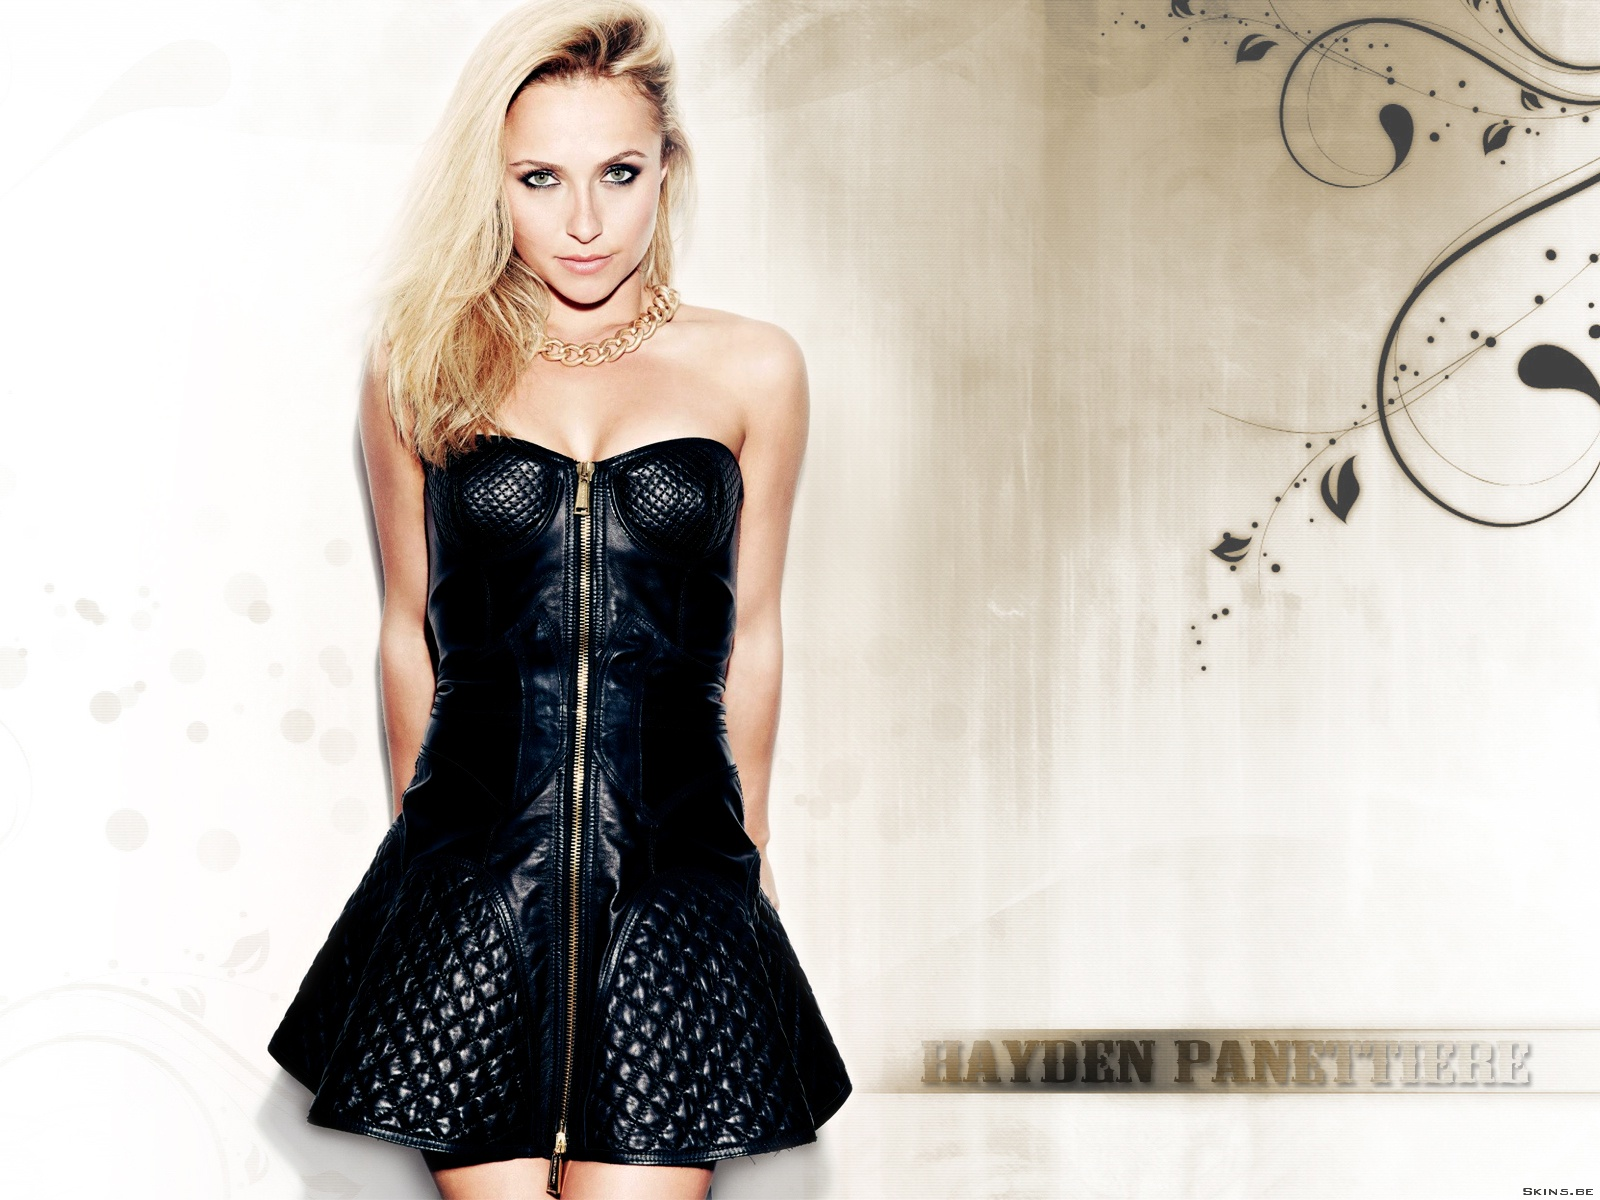 Hayden Panettiere wallpaper (#41610)